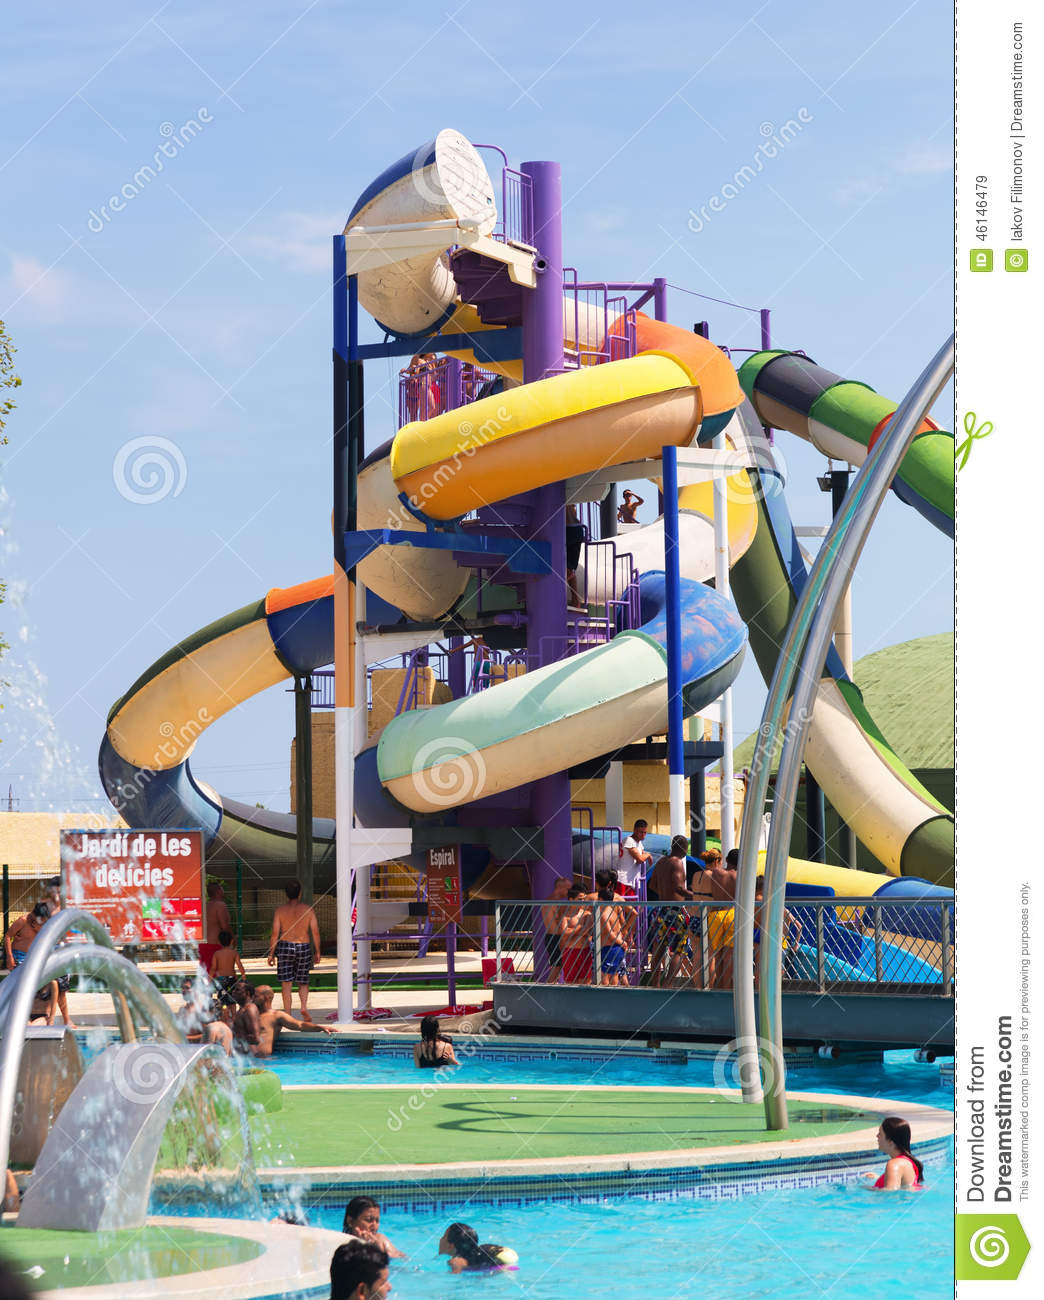 Water slide attraction editorial stock image image of - Swimming pools with waterslides in london ...